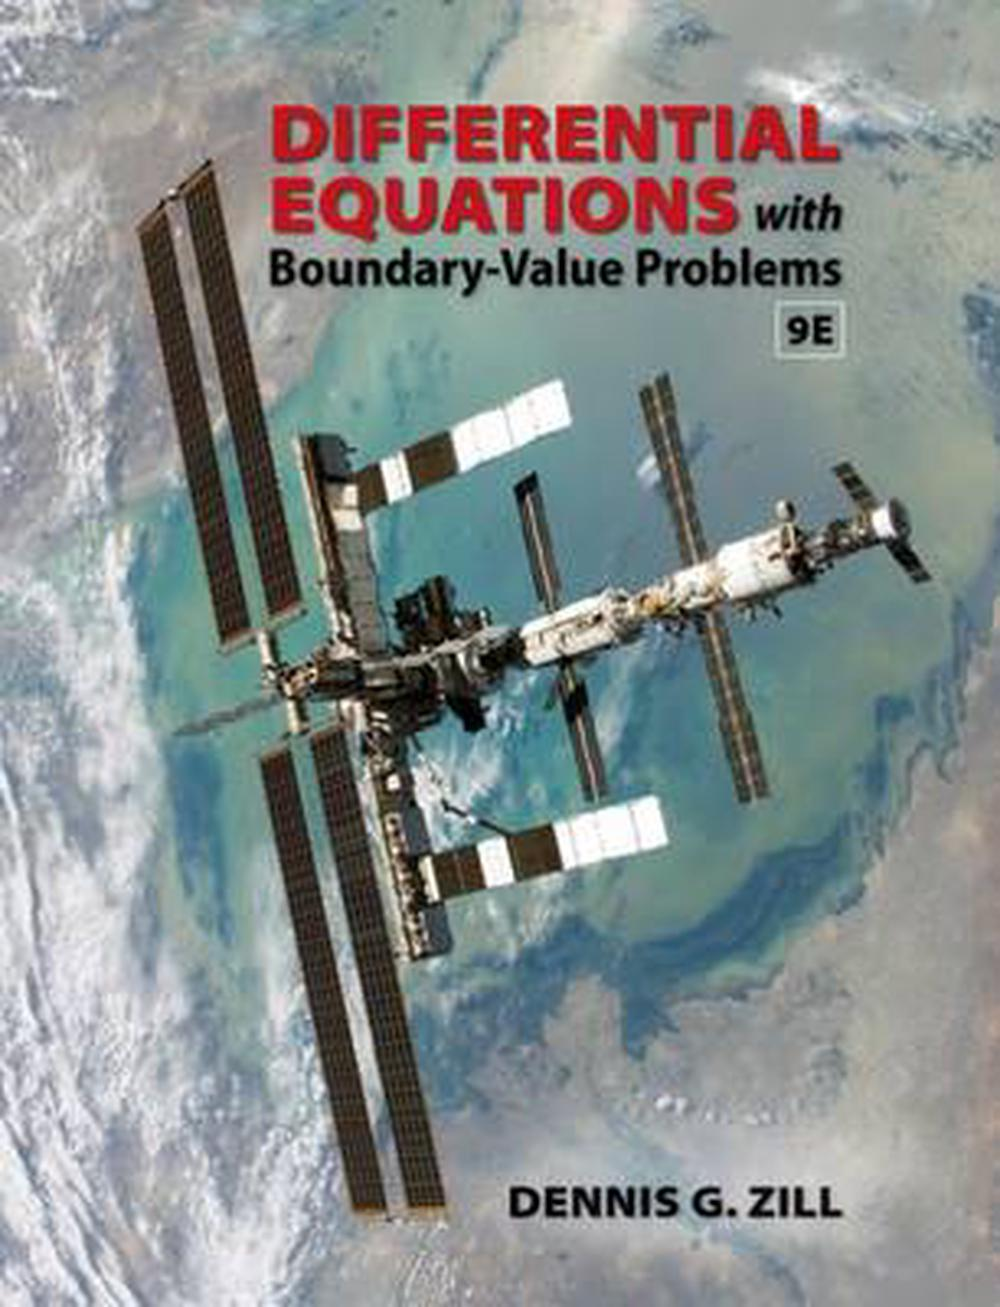 Differential Equations with Boundary-Value Problems, 9th Edition